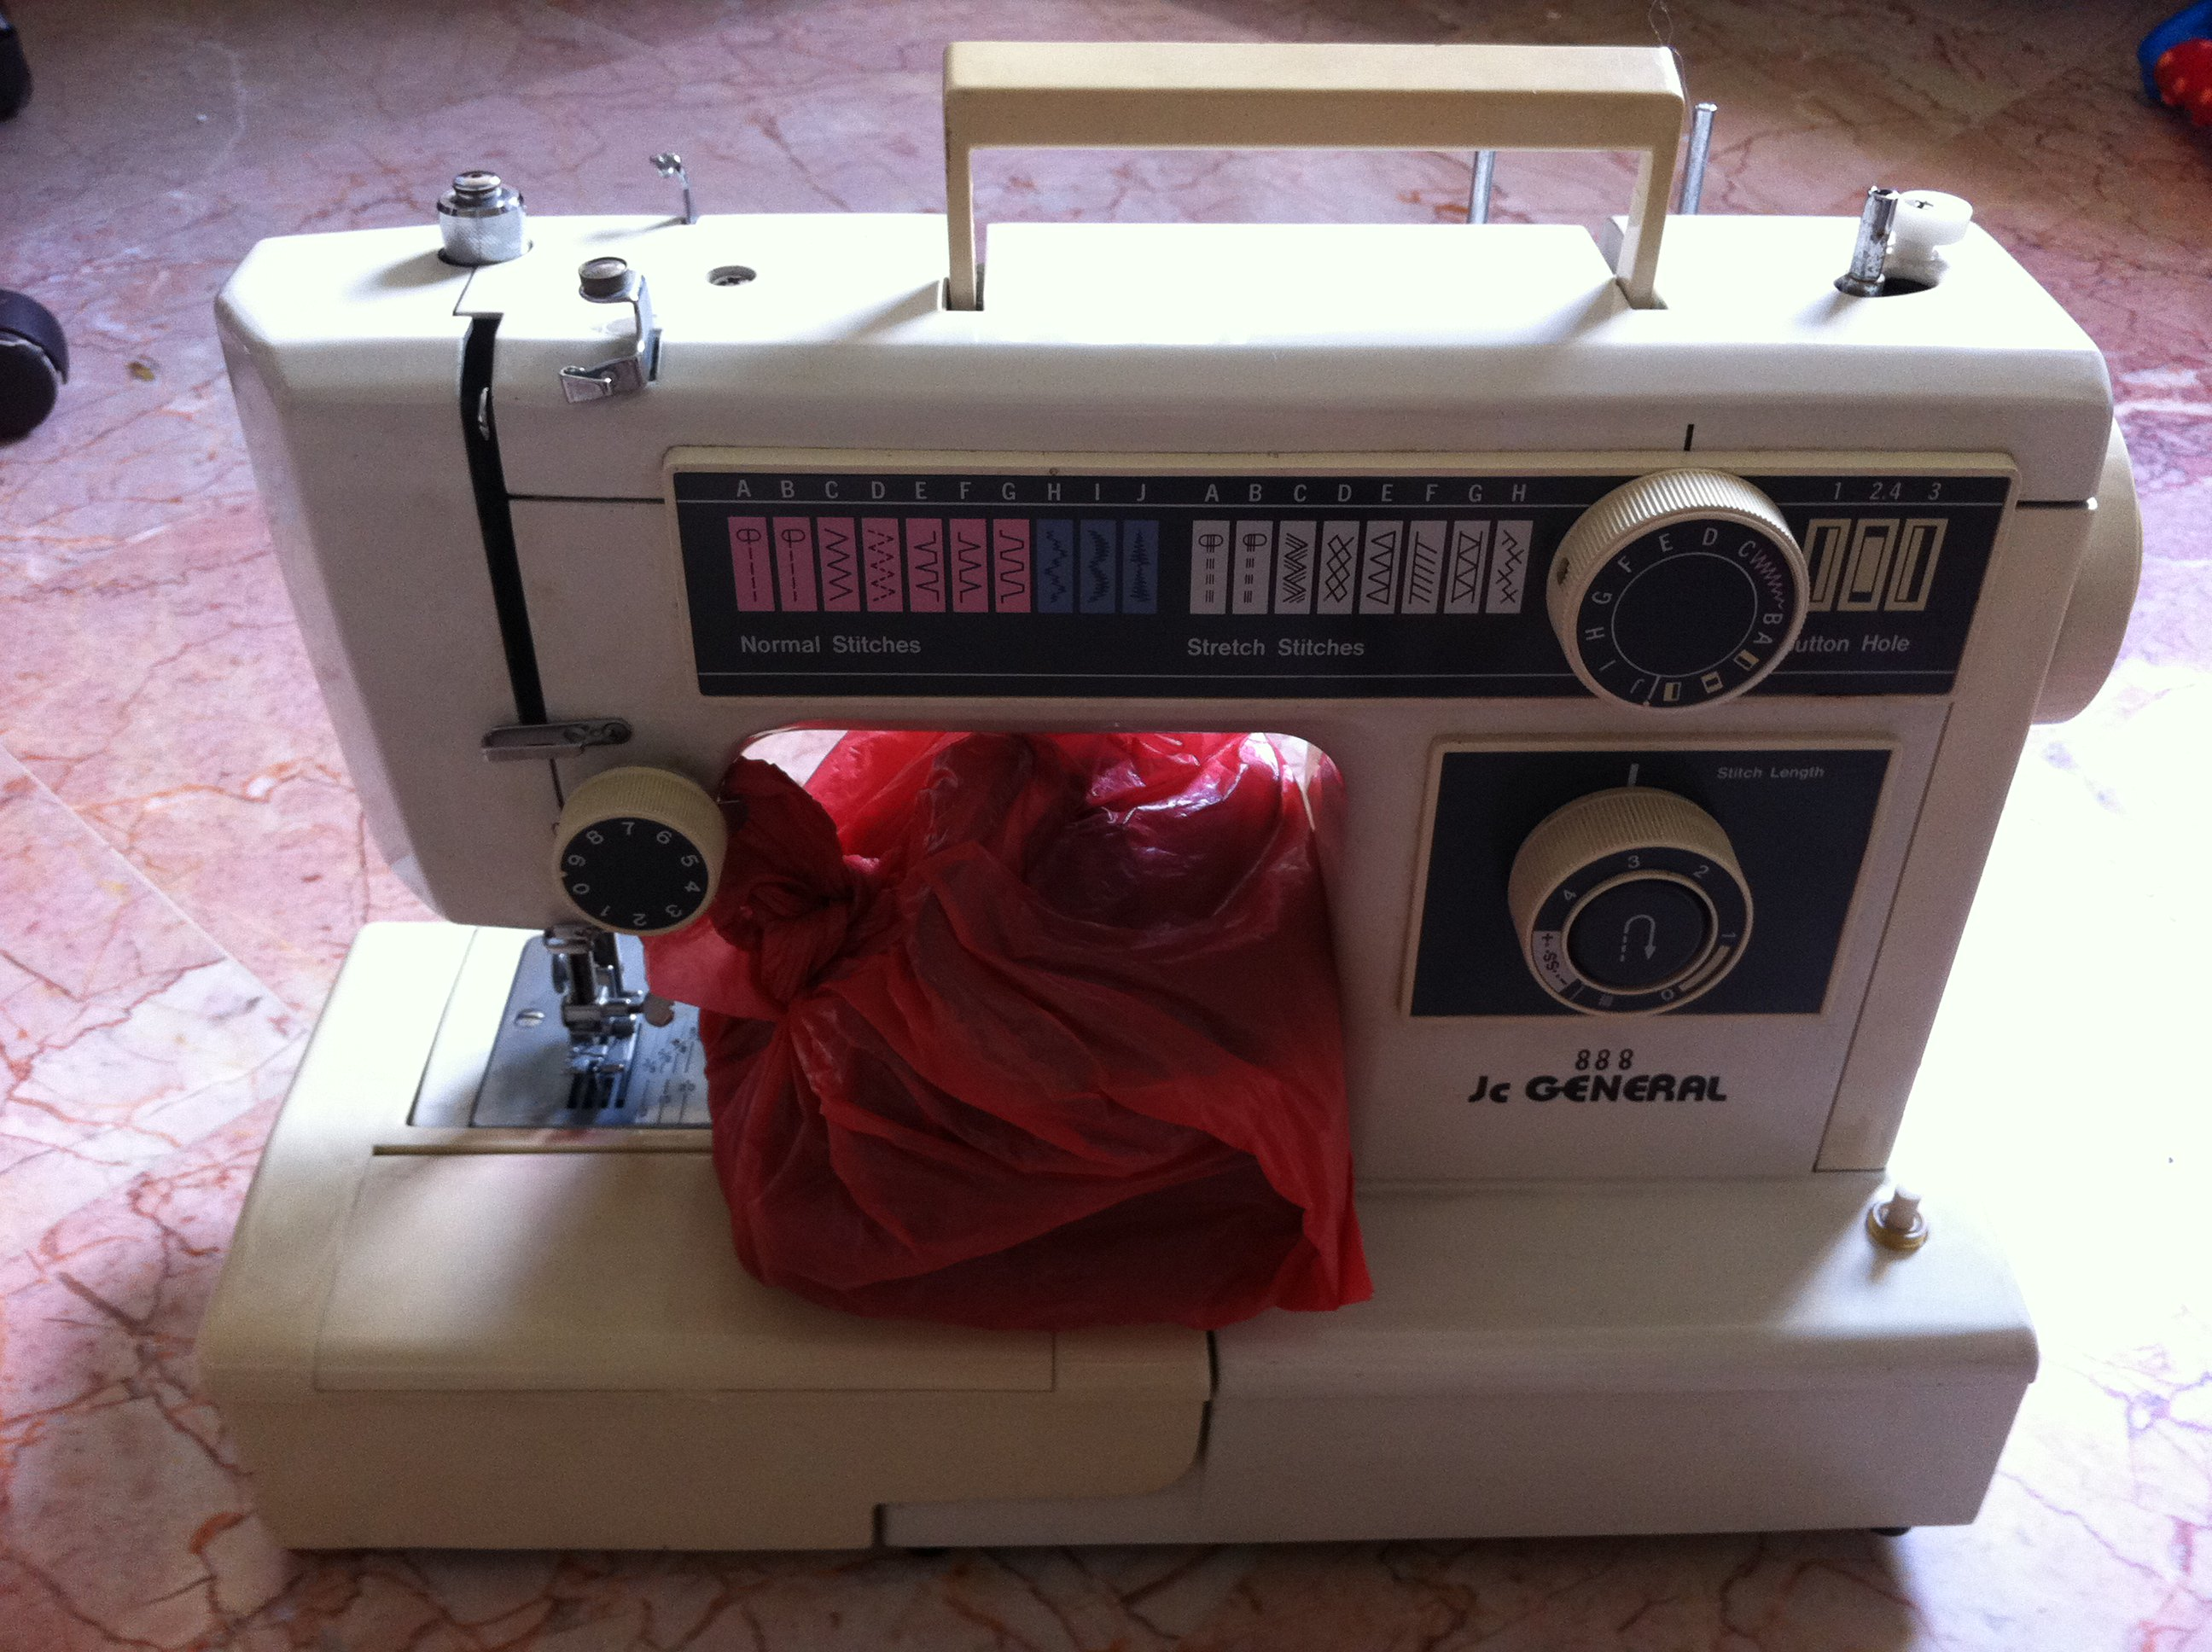 FOR SALE: Portable Sewing Machine for sale!